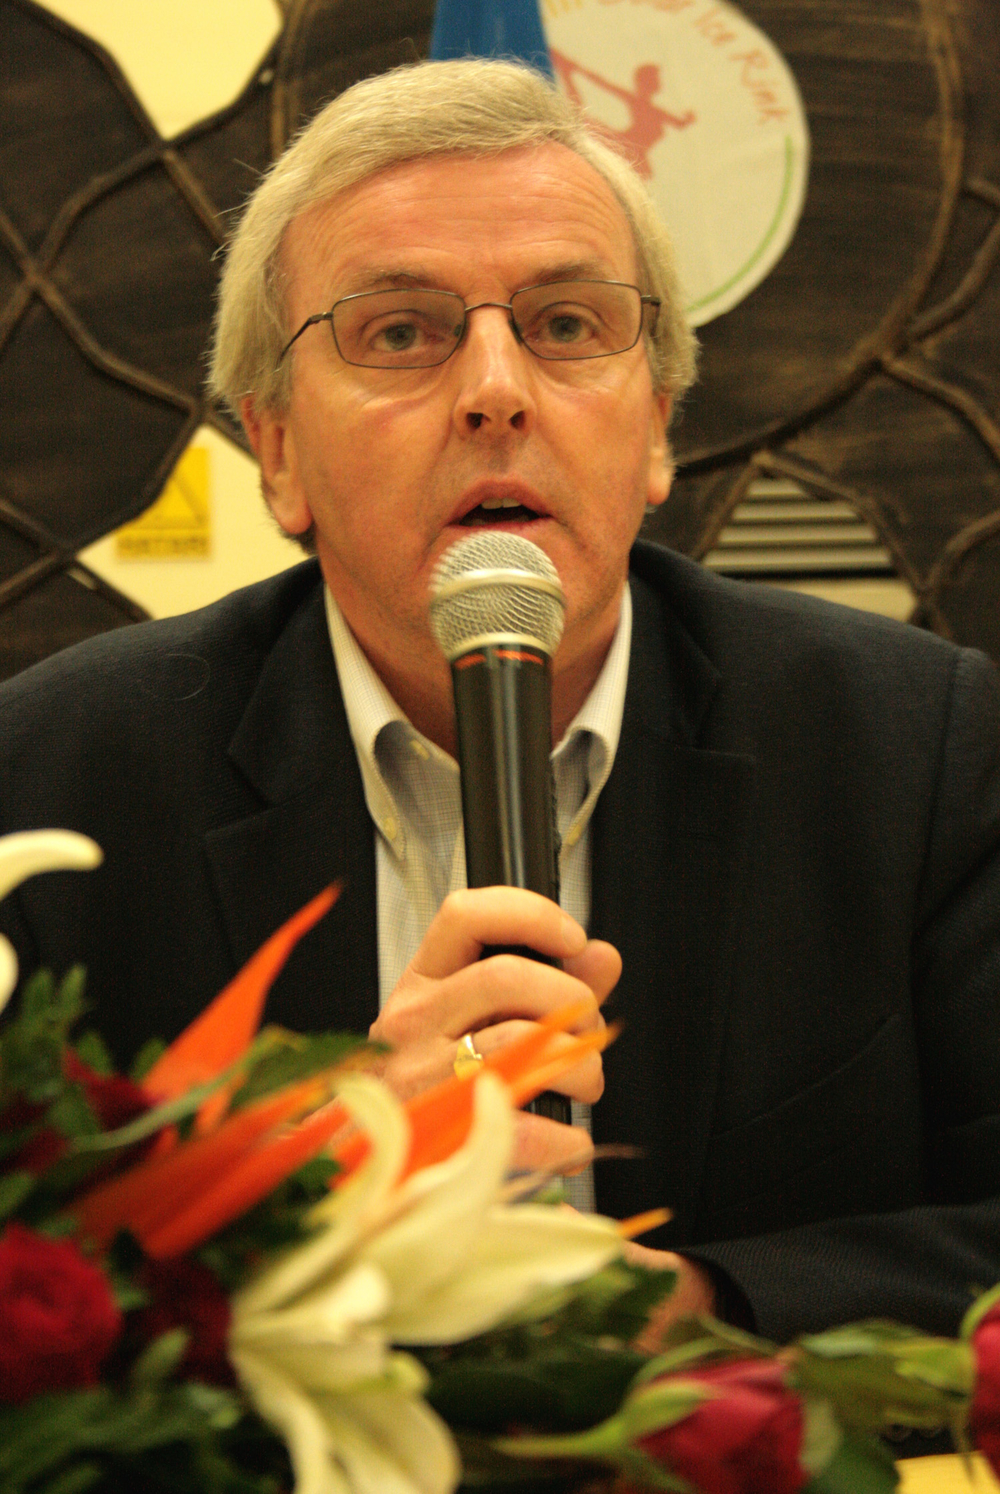 The UN Under-Secretary-General for Humanitarian Affairs and Emergency Relief Coordinator John Holmes, at a press conference in Nairobi, Kenya, 3 December 2007, following a trip to Ethiopia and Somalia.